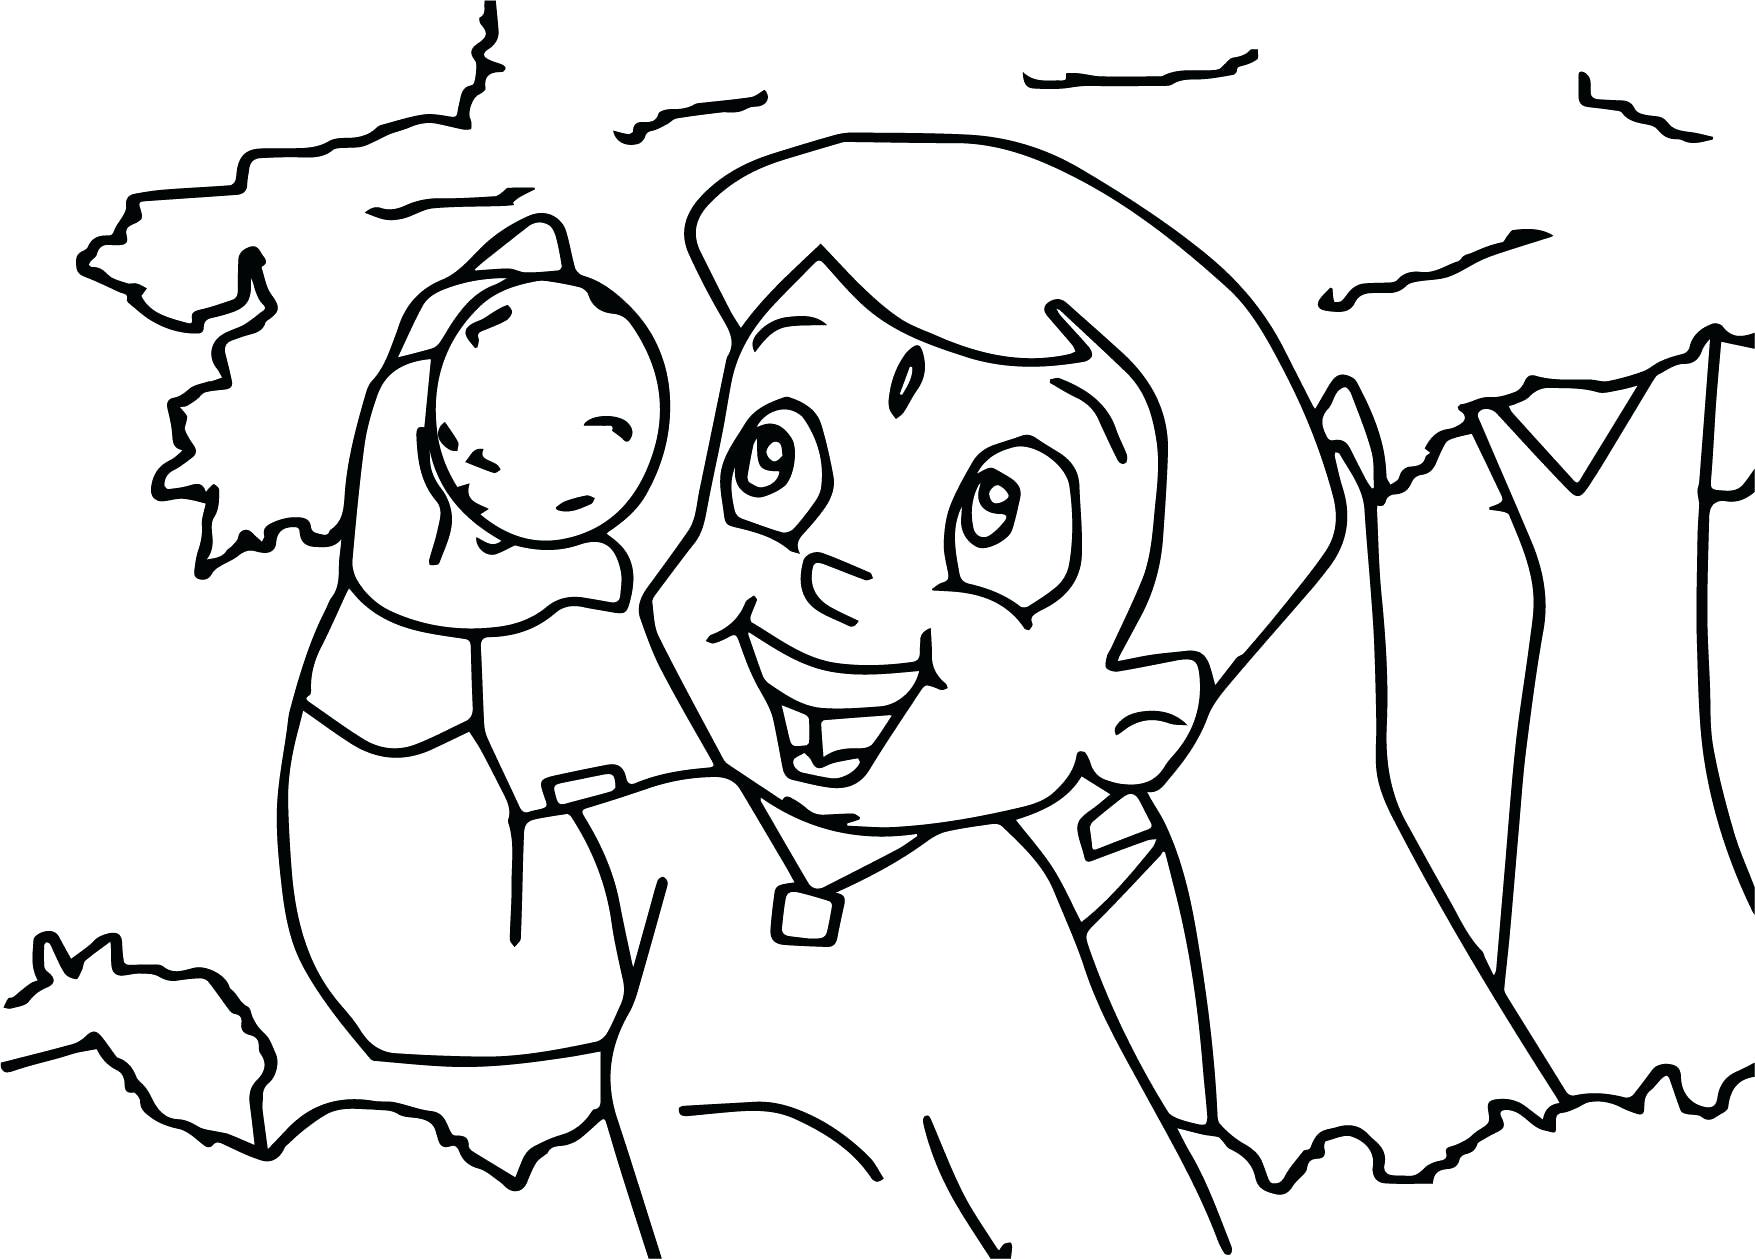 Iced Tea Coloring Pages At Getcolorings